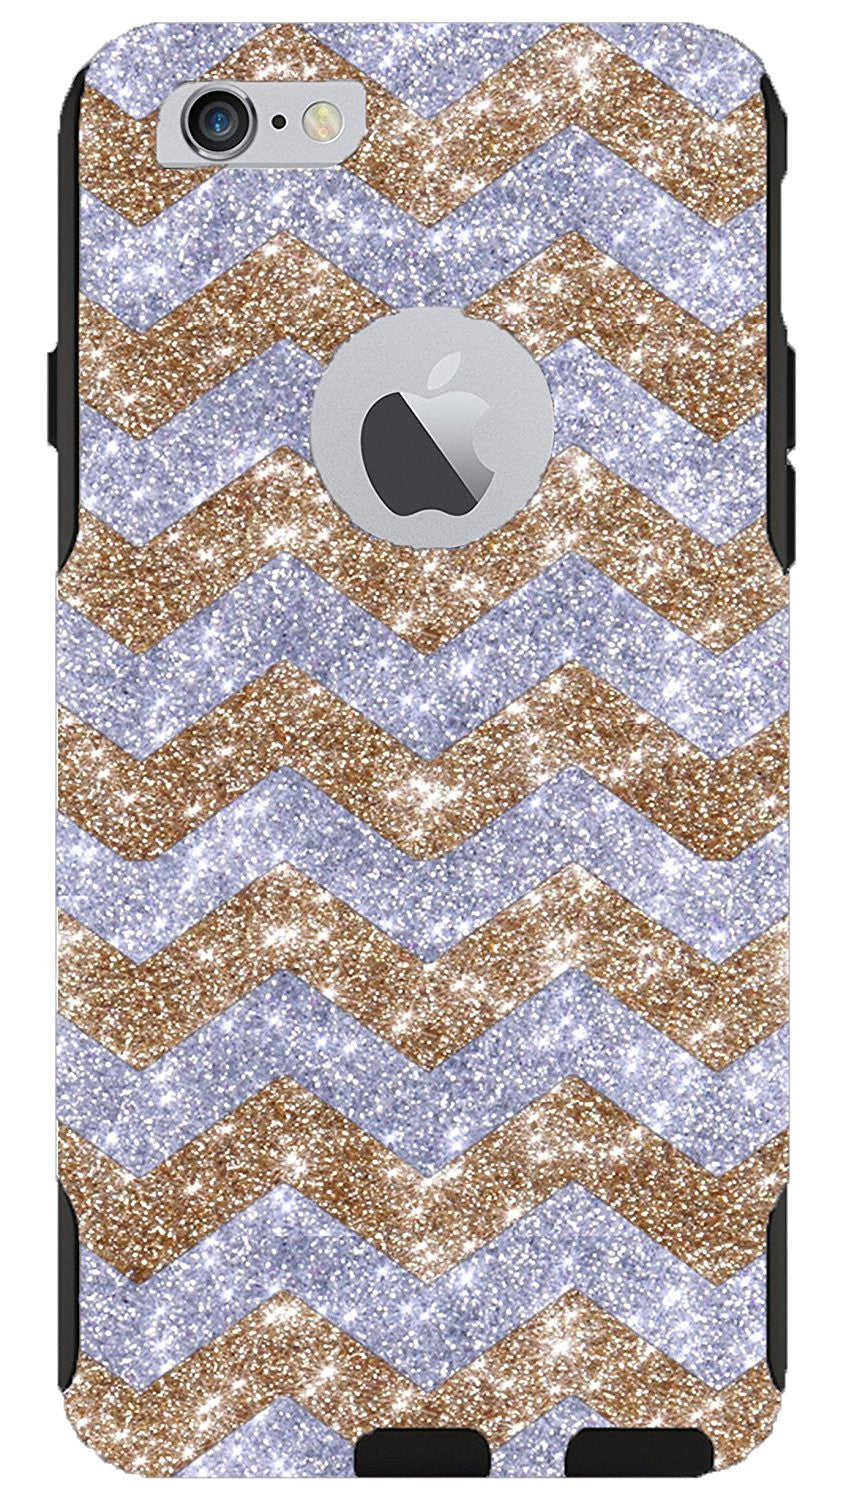 OtterBox iPhone 6 Plus Case - OtterBox Commuter Series Custom Glitter Case  for iPhone 6 Plus, Retail Packaging - Gold Small Chevron Silver/Black (5 5